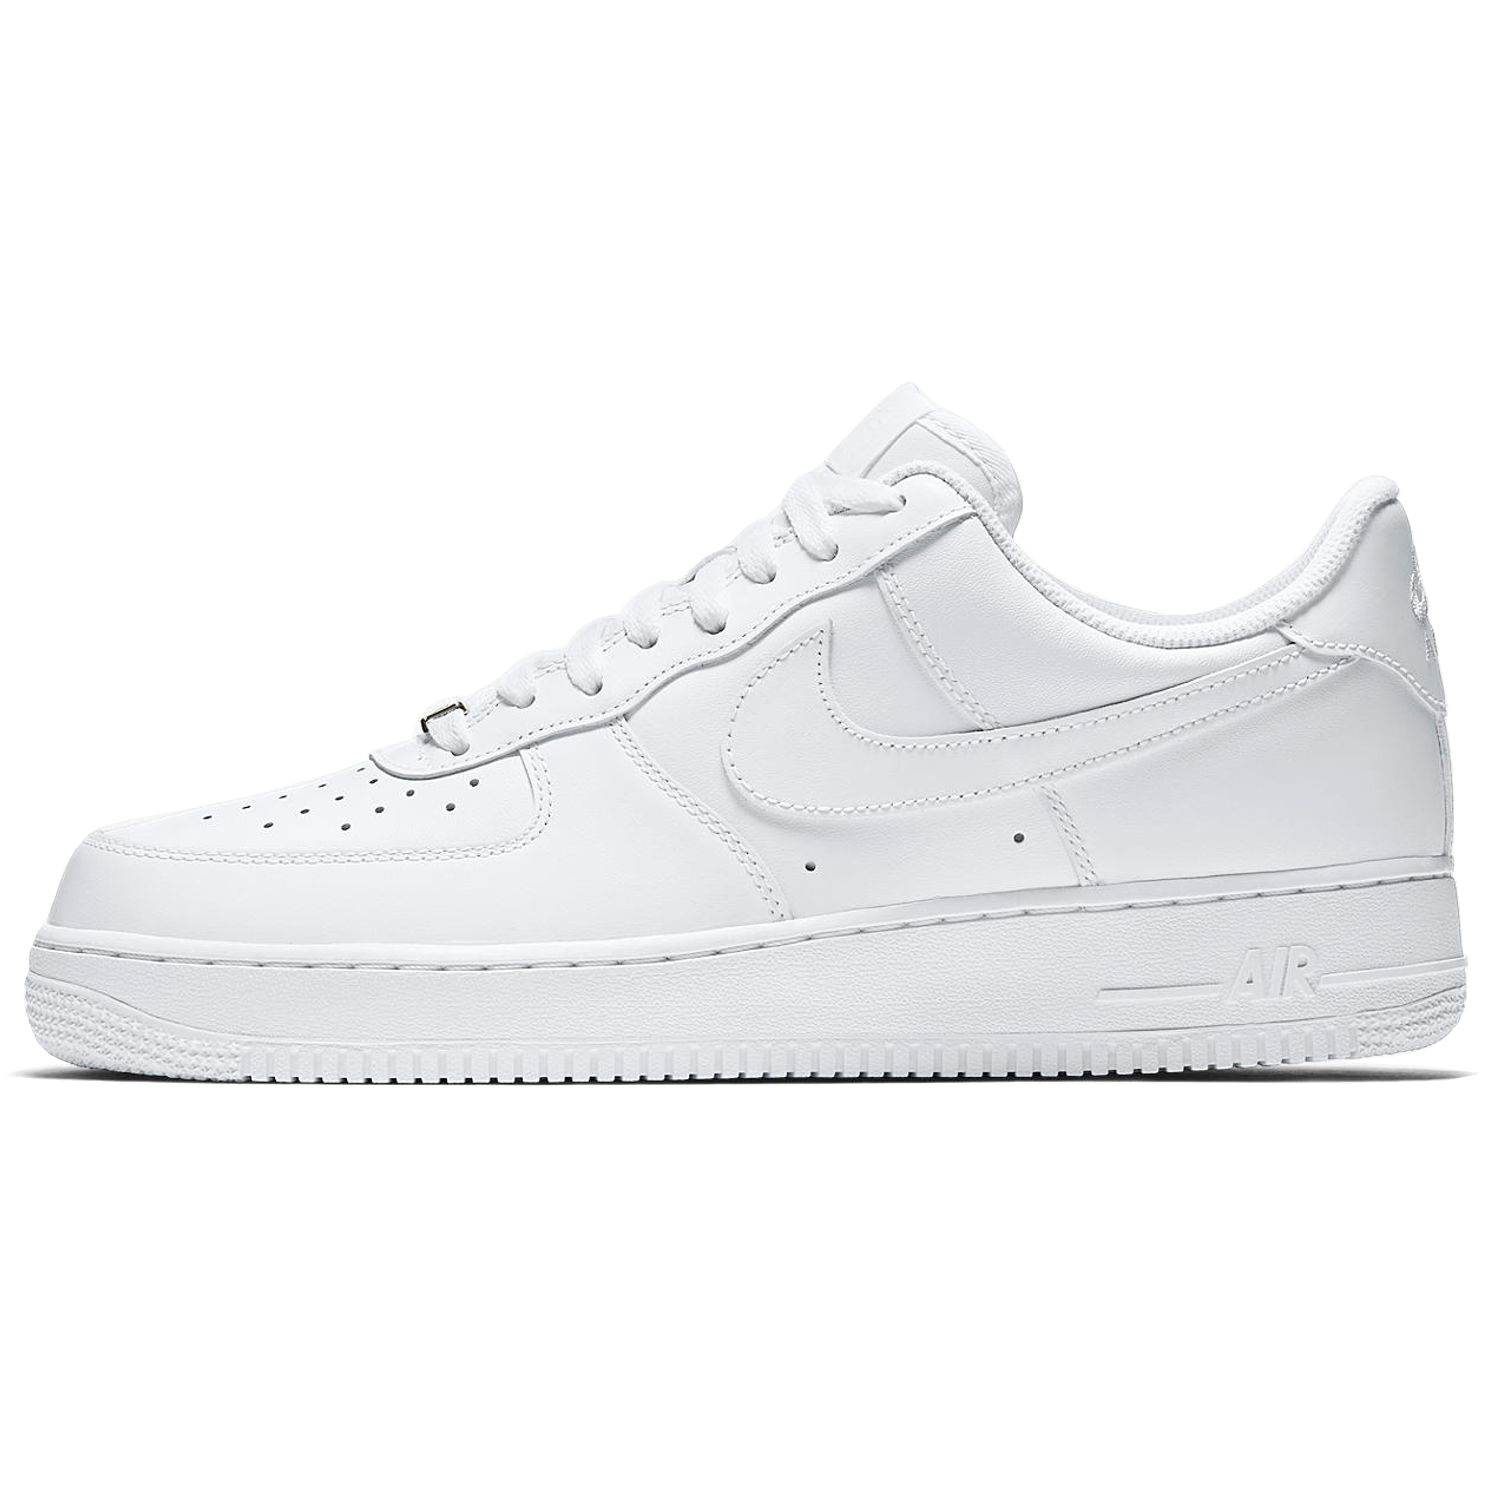 air force one nike białe